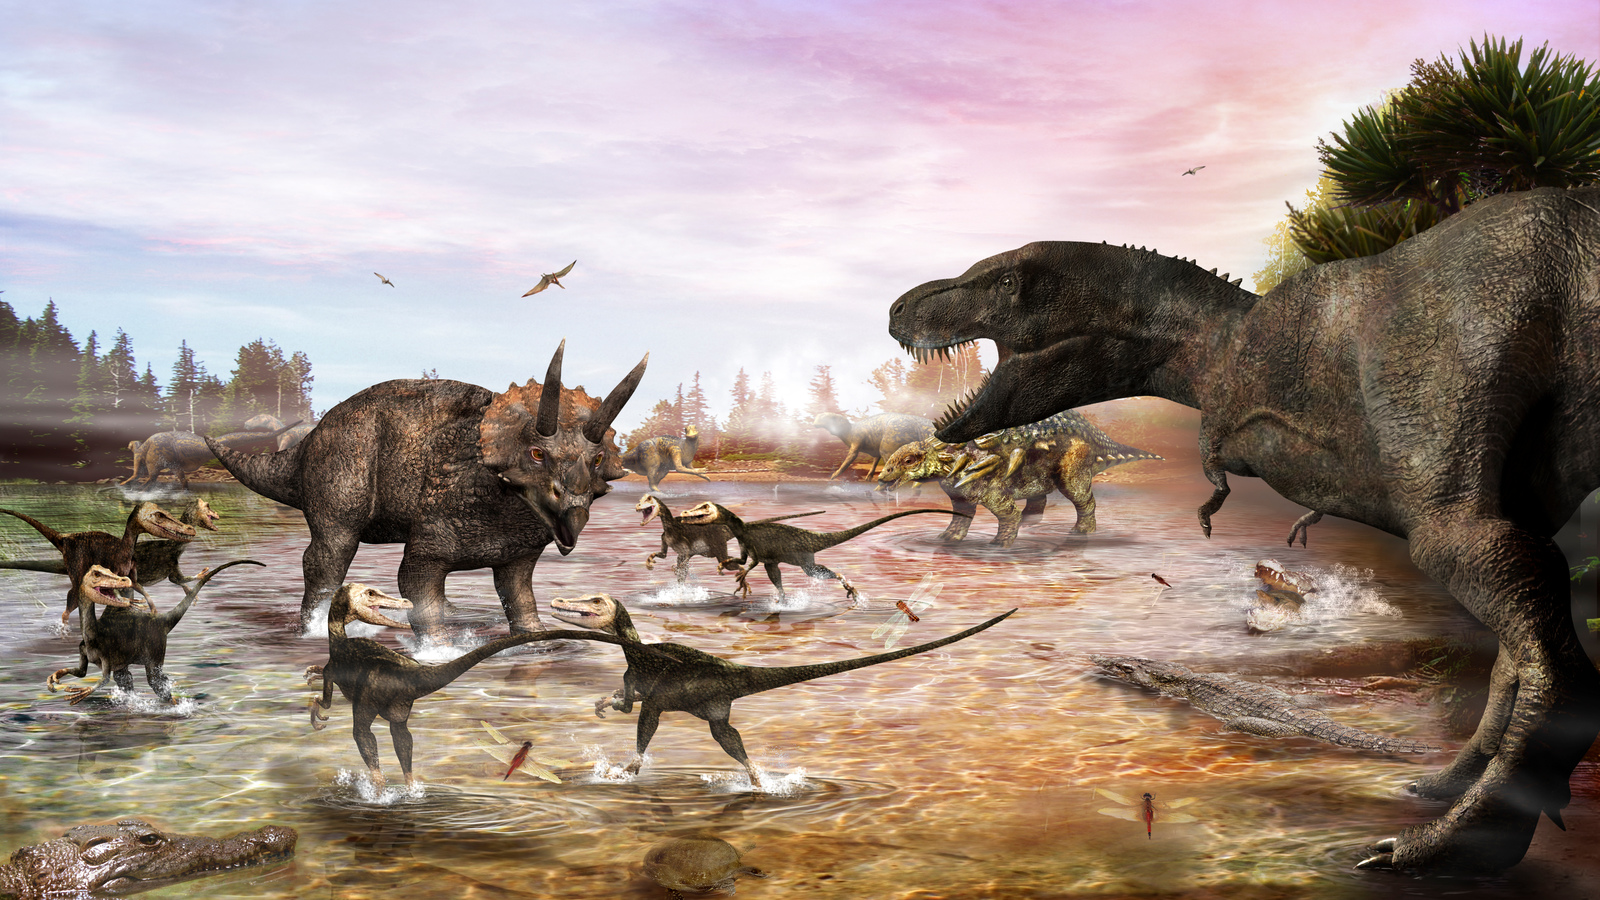 examining the cretaceous paleogene extinction event The cretaceous ended with a mass extinction, the cretaceous–paleogene extinction event, in which many groups, including non-avian dinosaurs, pterosaurs the end of the cretaceous is defined by the abrupt cretaceous–paleogene boundary, the name cretaceous was.